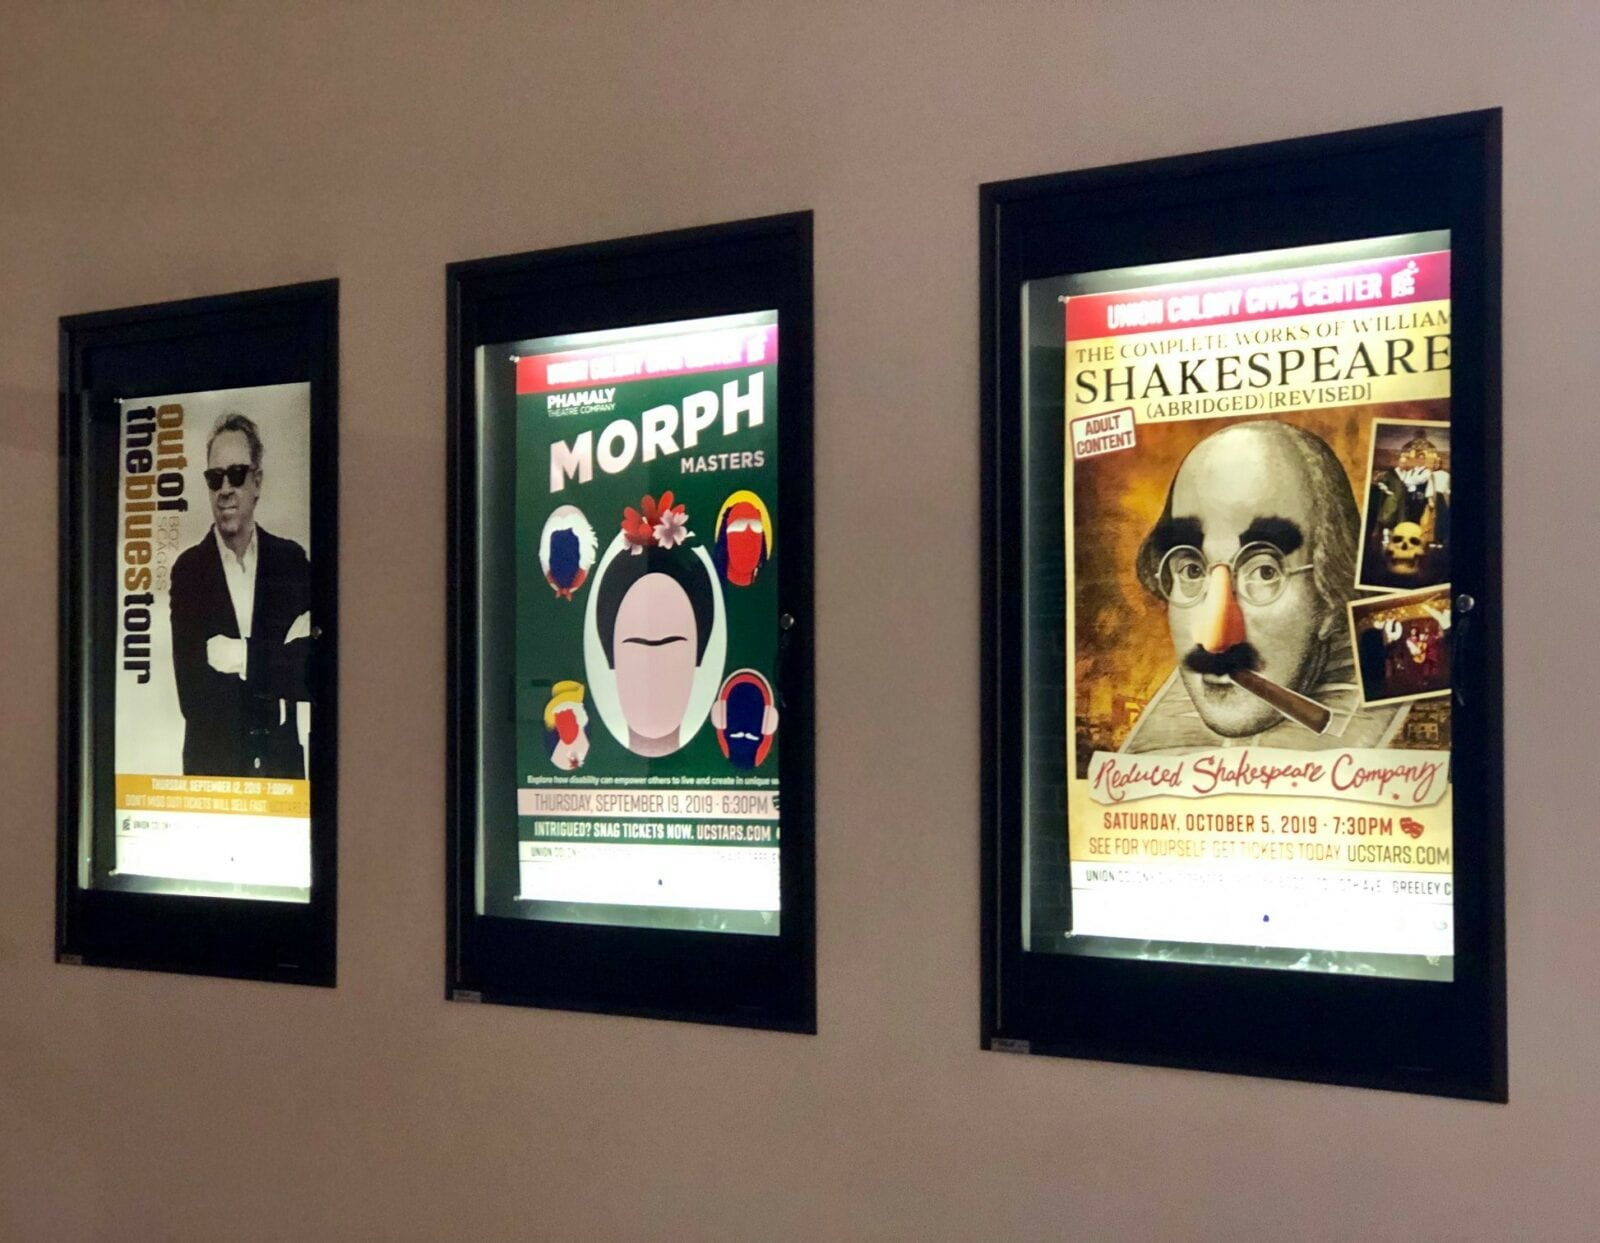 Image of the upcoming posters at Union Colony Civic Center in Greeley, Colorado